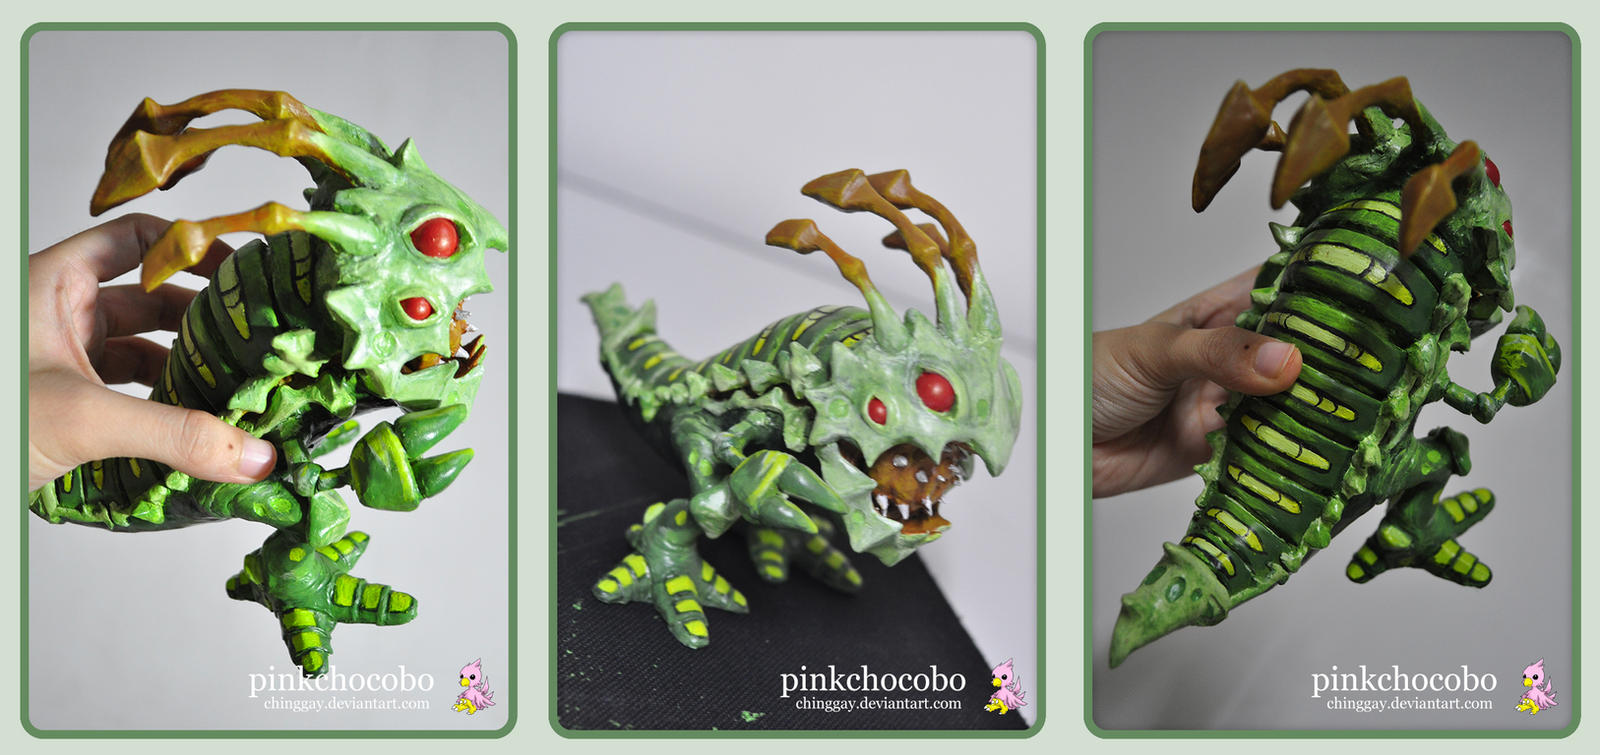 Caterpillar Kog'maw Sculpture by chinggay